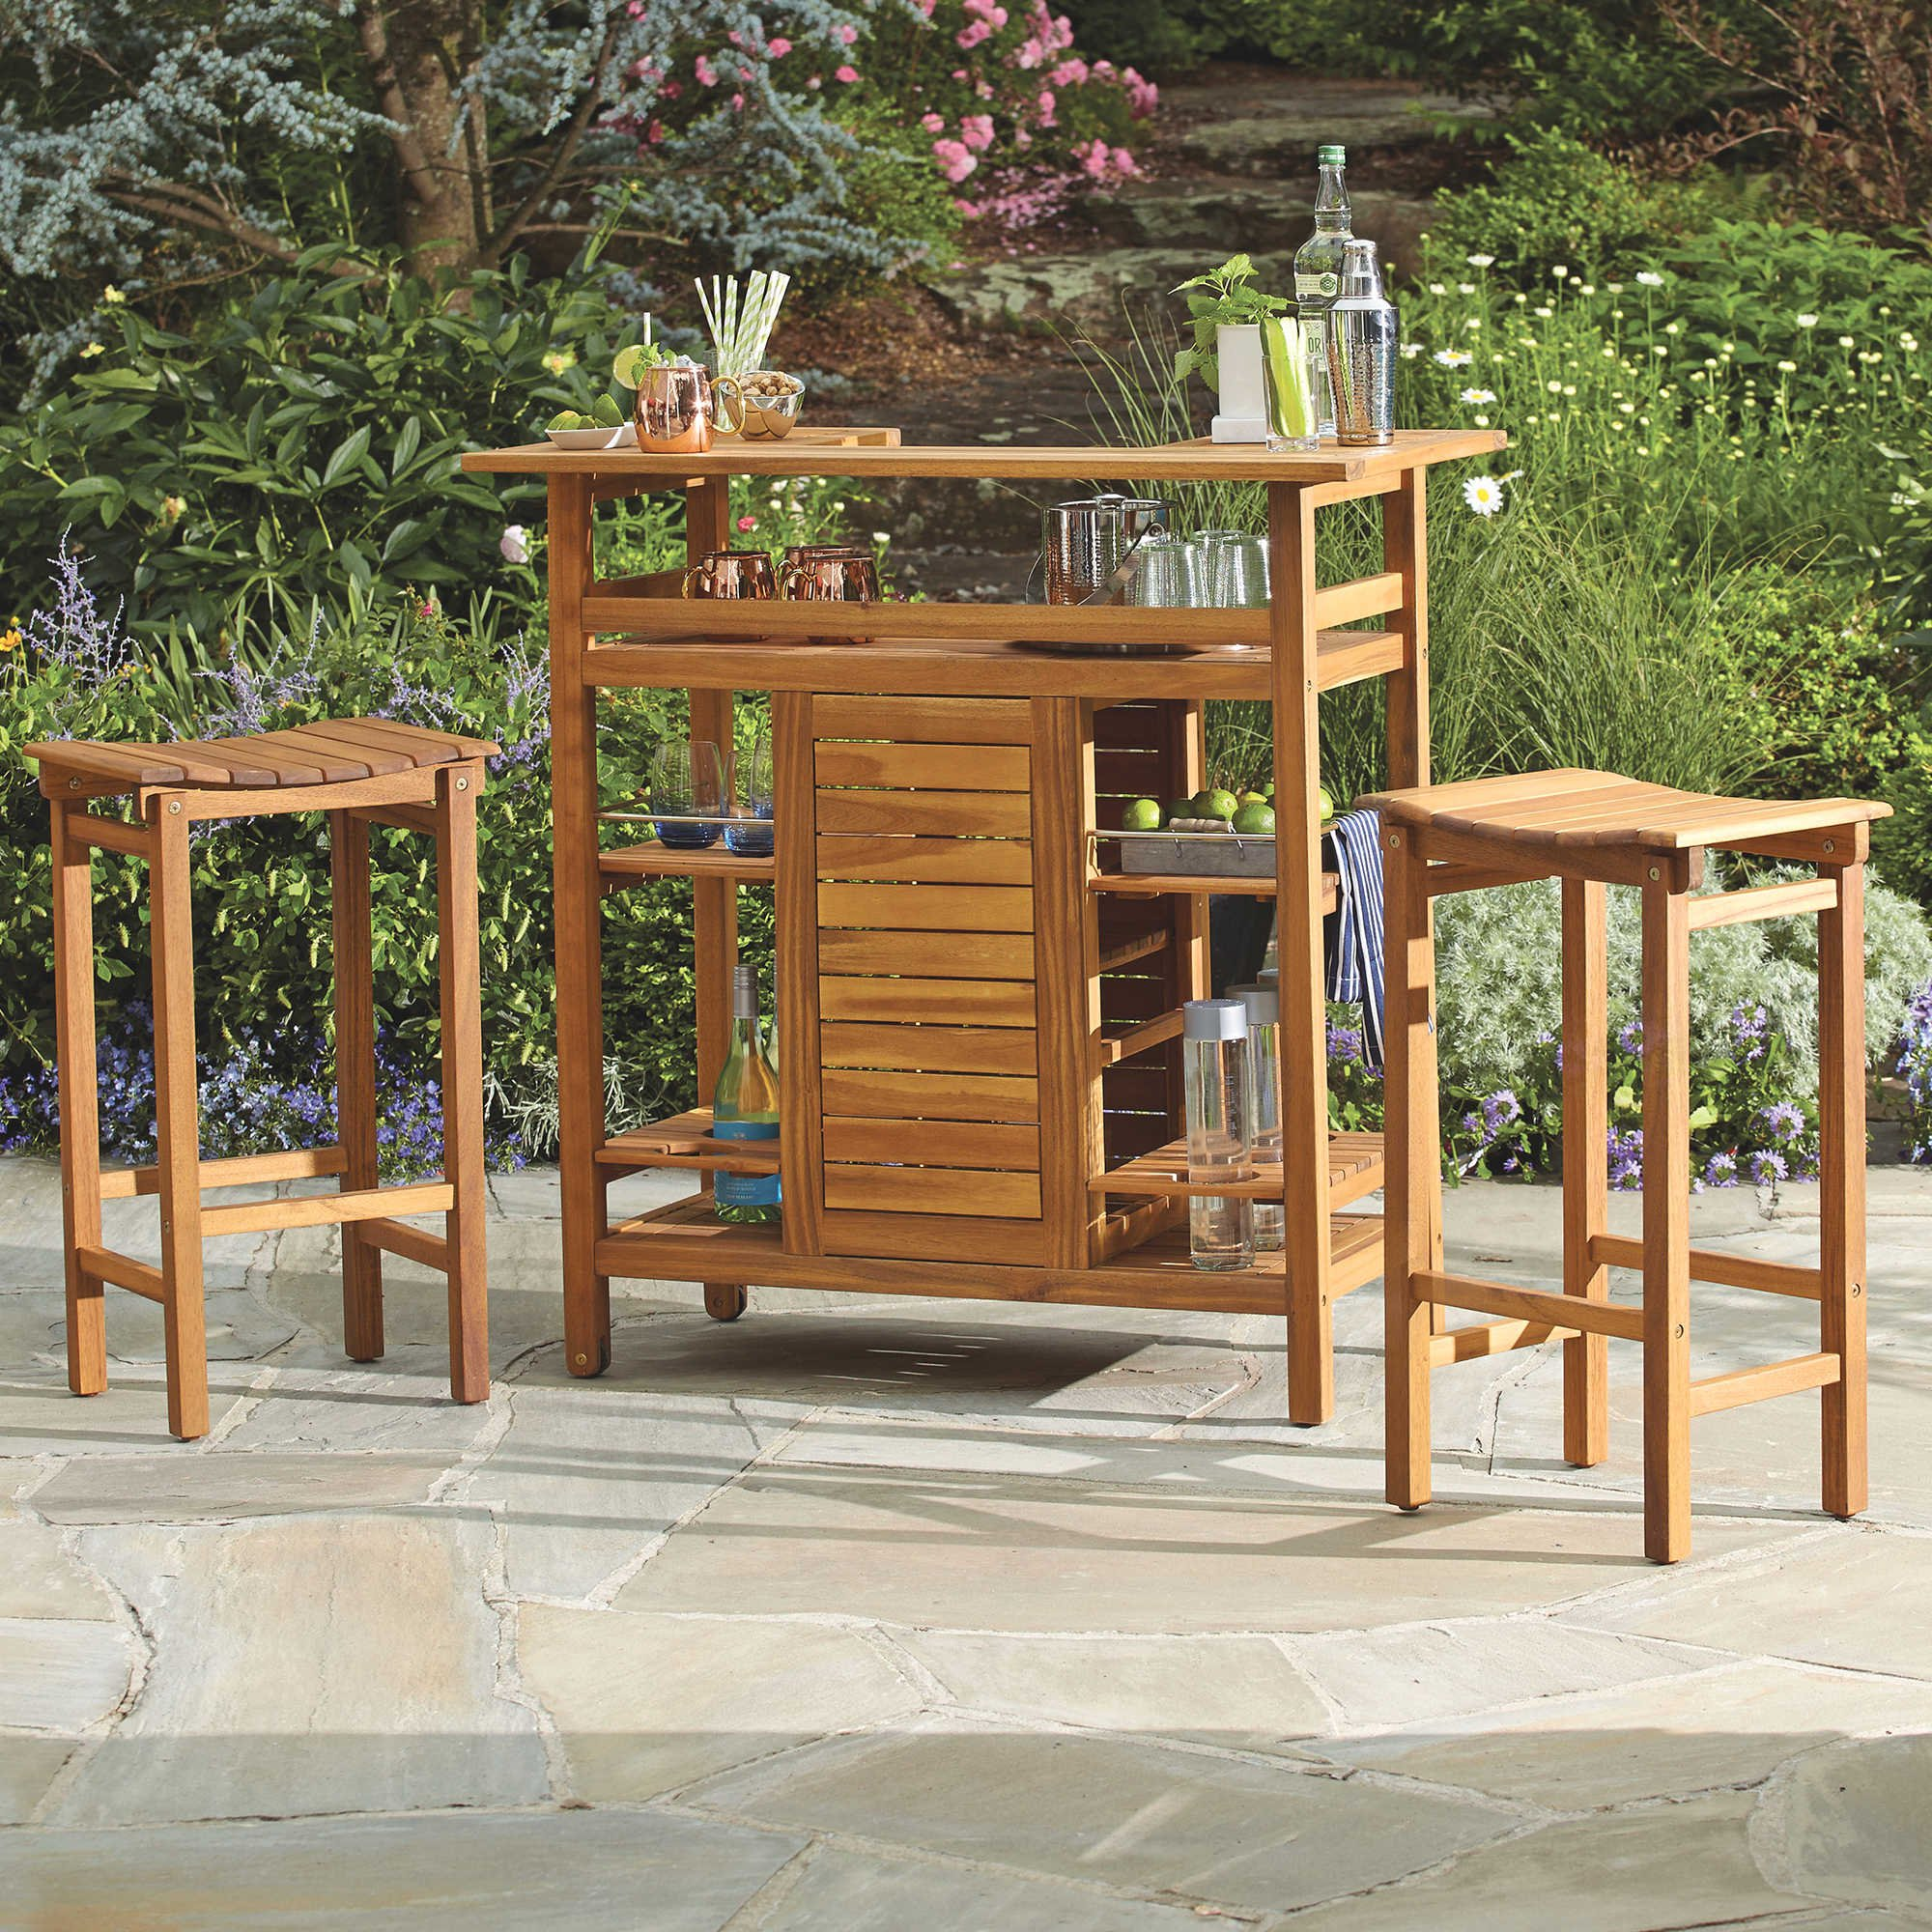 29-inch Outdoor Bar Stools of Westerly Acacia Wood, Softly Curved Seat for Comfort, Perfect for Patio or Outdoor Entertainment Area, (Set of 2)